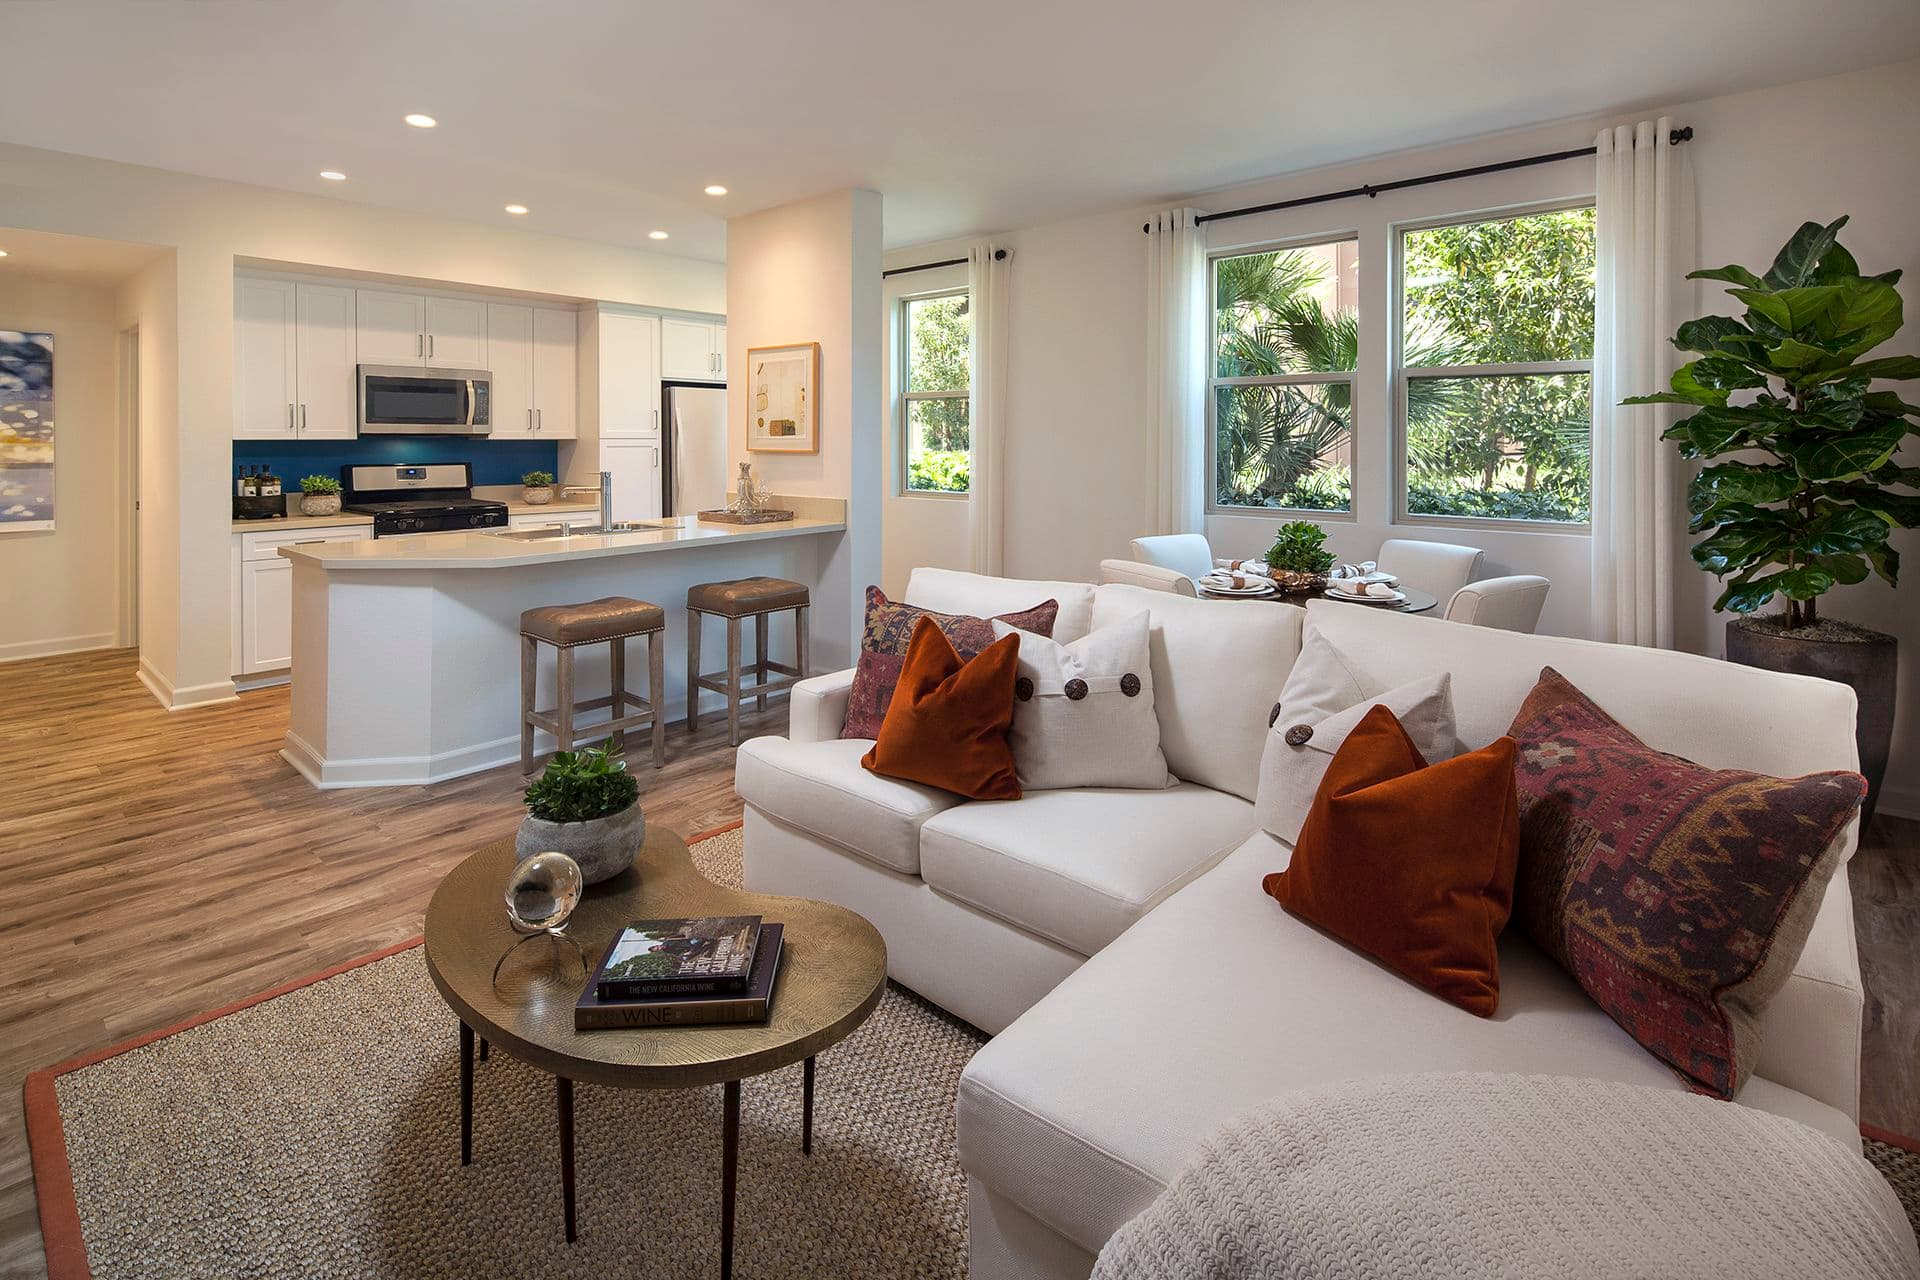 Living room and kitchen of Westview at Irvine Spectrum Apartment Homes in Irvine, CA.